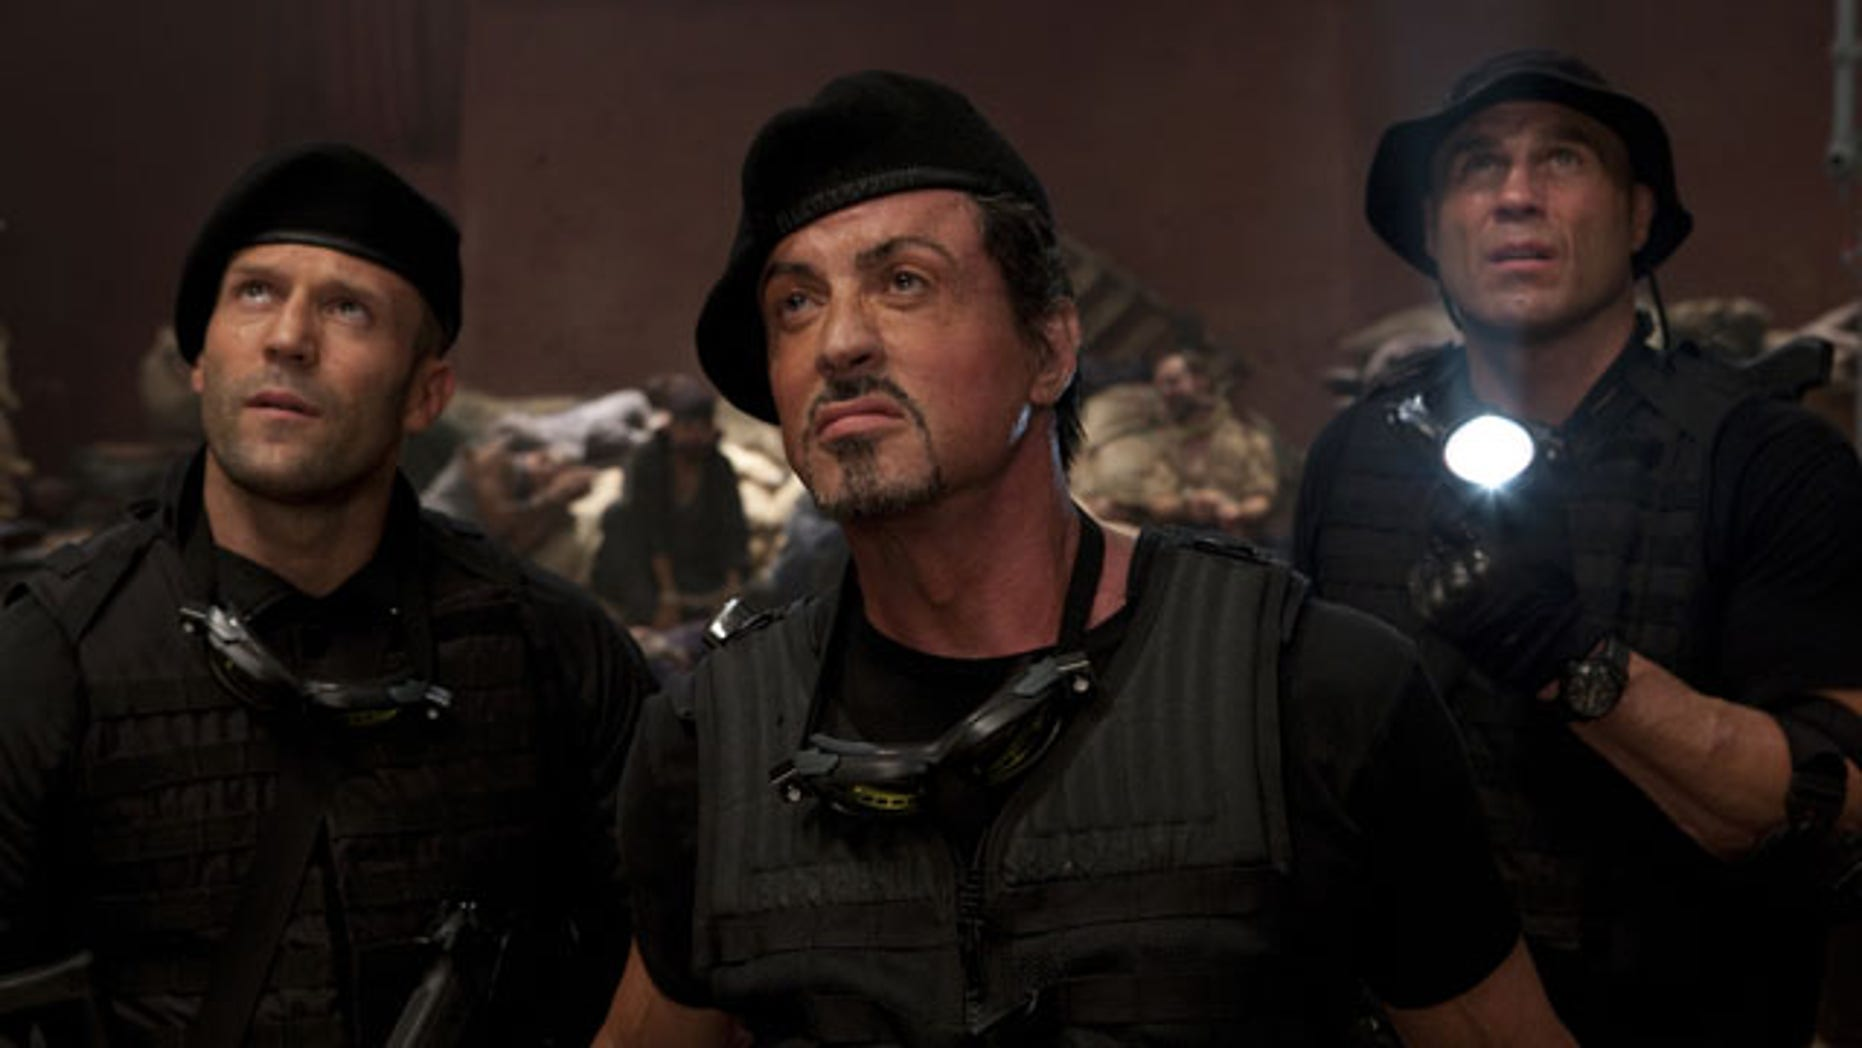 """In this film publicity image released by Lionsgate Entertainment, from left, Jason Statham, Sylvester Stallone and Randy Couture are shown in a scene from """"The Expendables."""""""